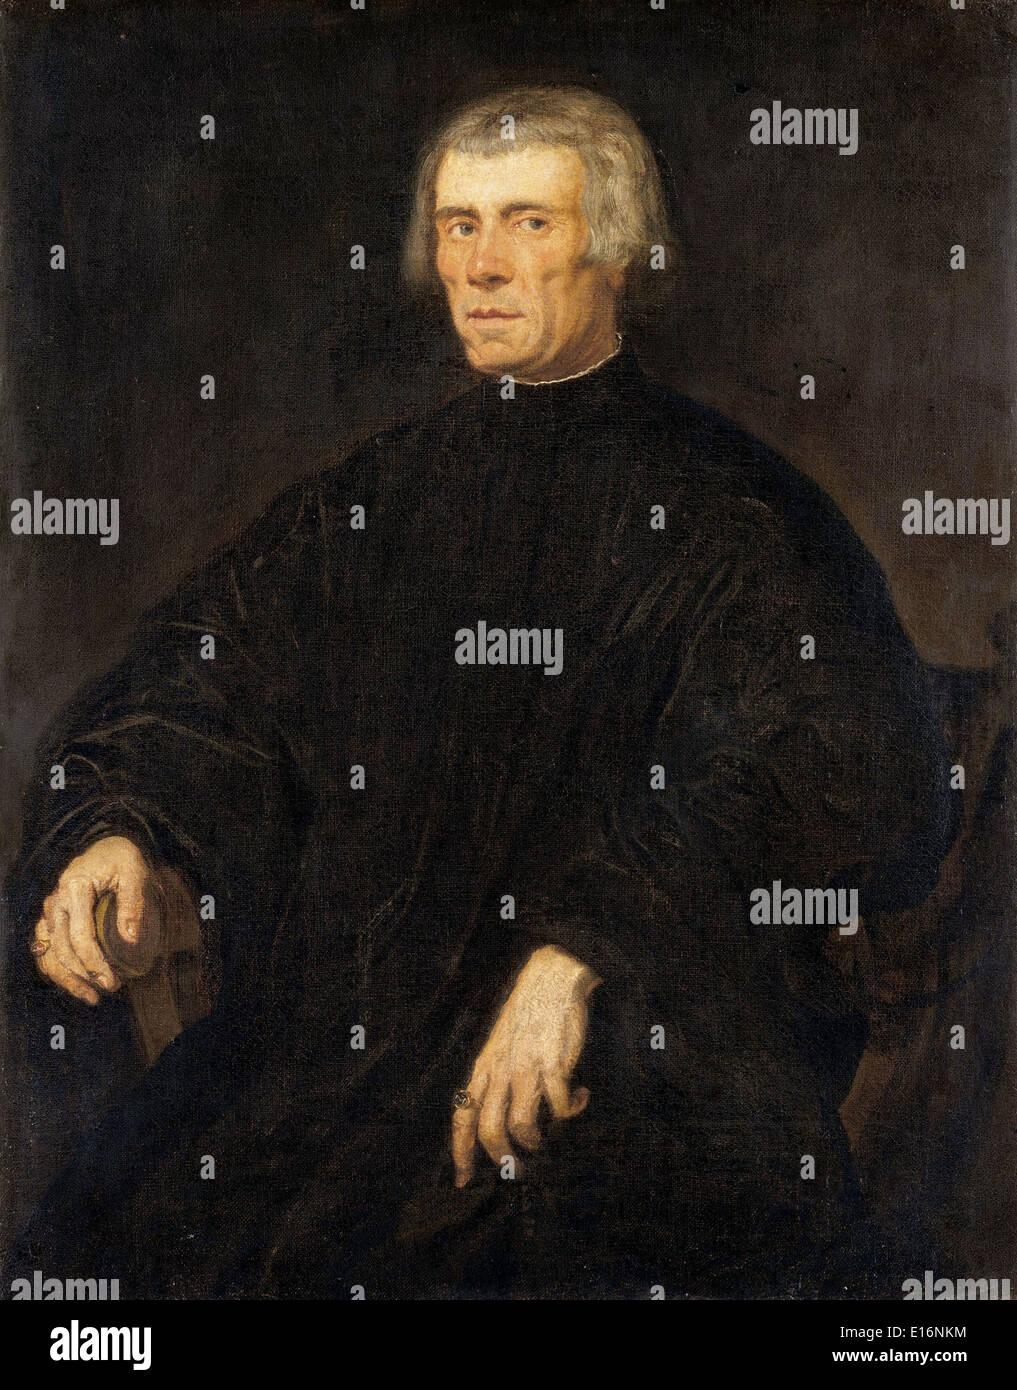 Portrait of a Man by Tintoretto, 1540 Stock Photo